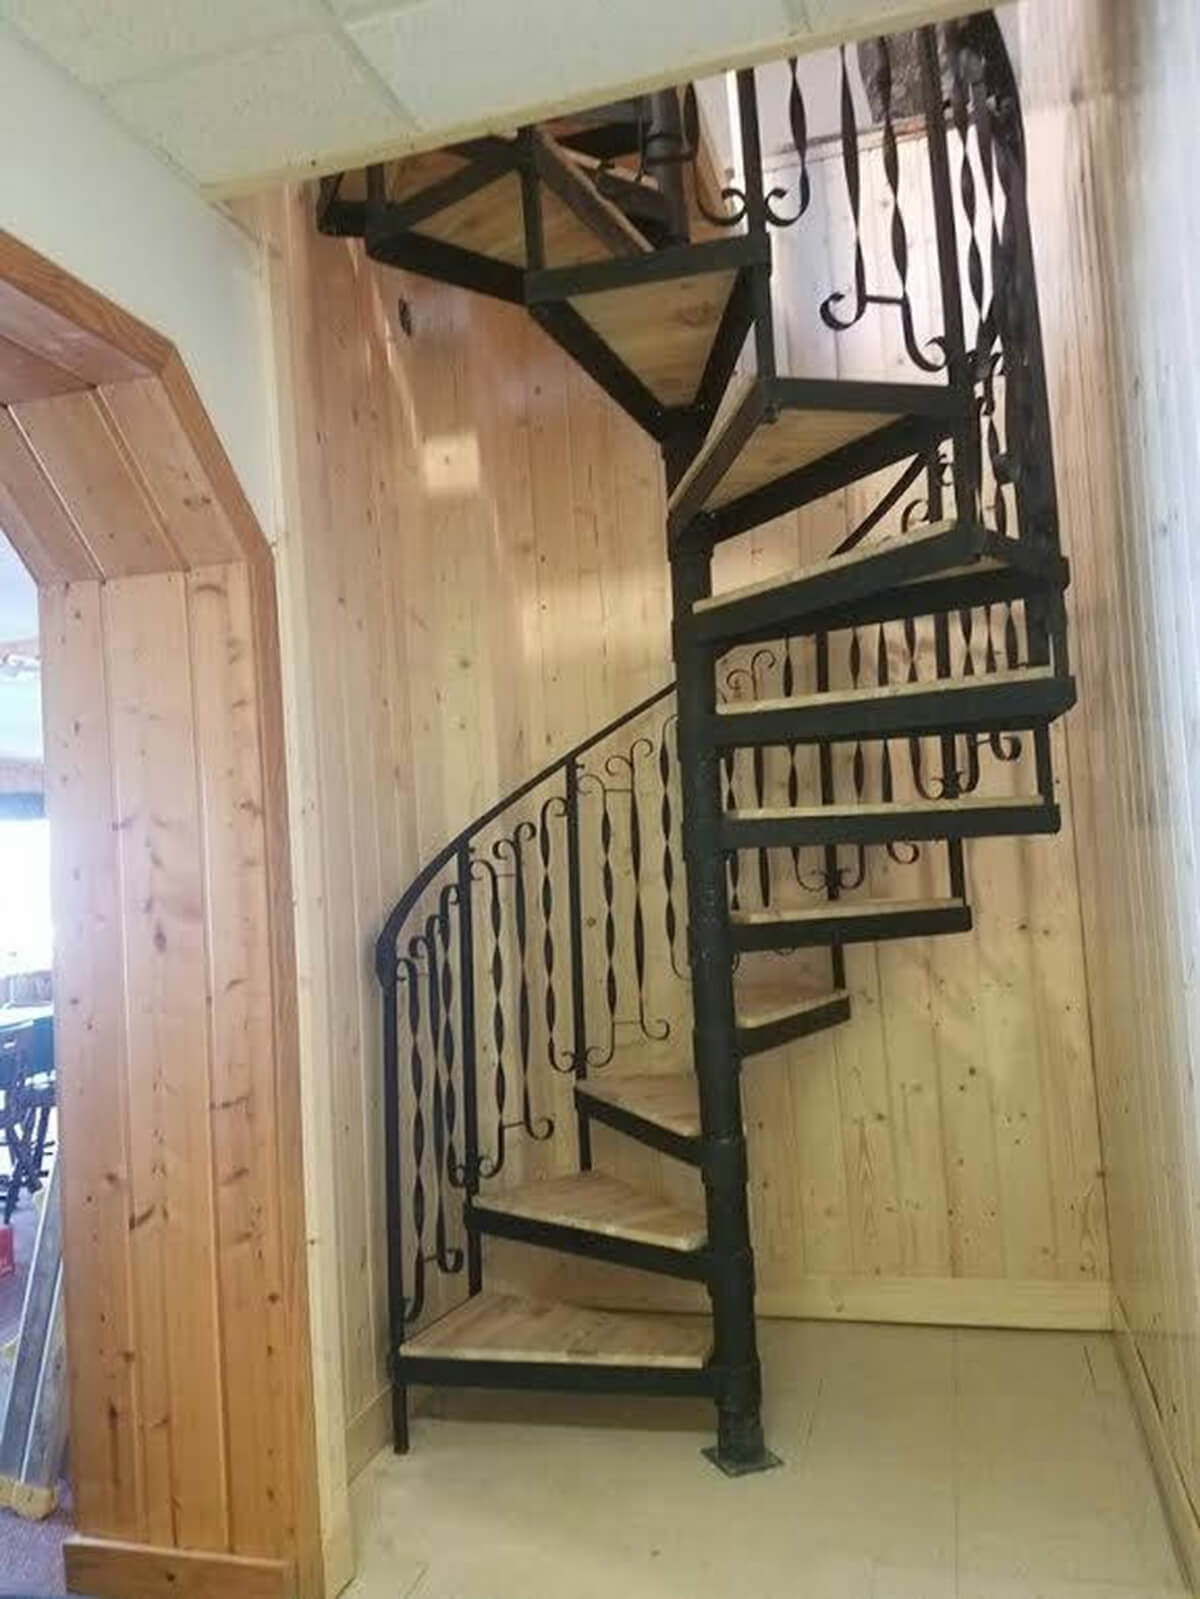 16 Best Spiral Staircase Ideas And Designs For 2020 | Diy Outdoor Spiral Staircase | Small Space | Before And After | Backyard | Half Circle | Metal